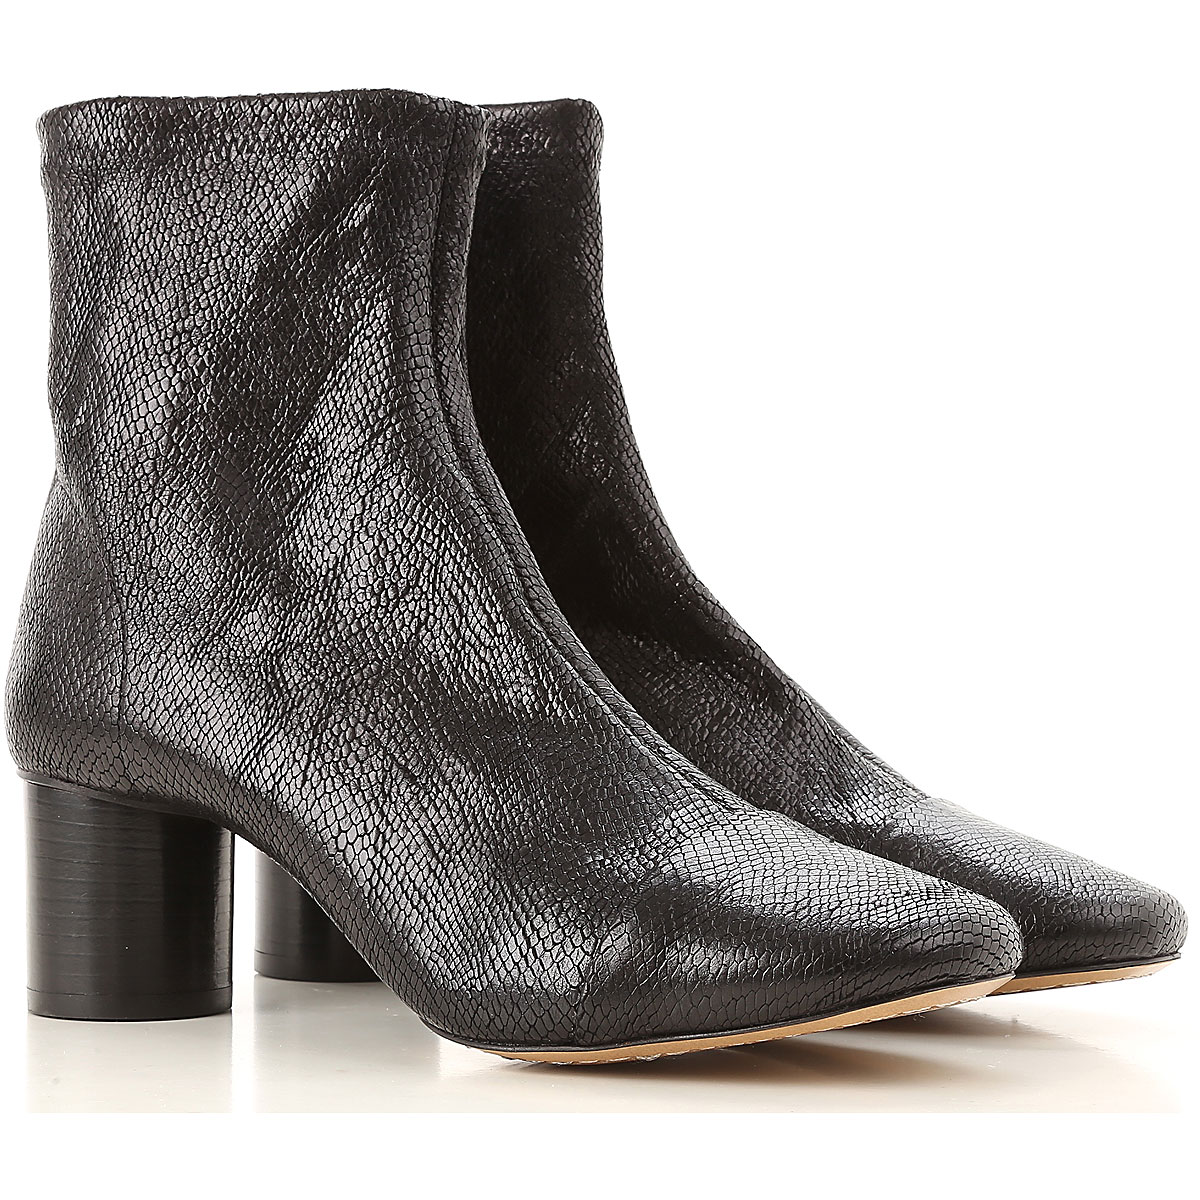 Image of Isabel Marant Boots for Women, Booties, Black, Leather, 2017, 10 5 6 7 8